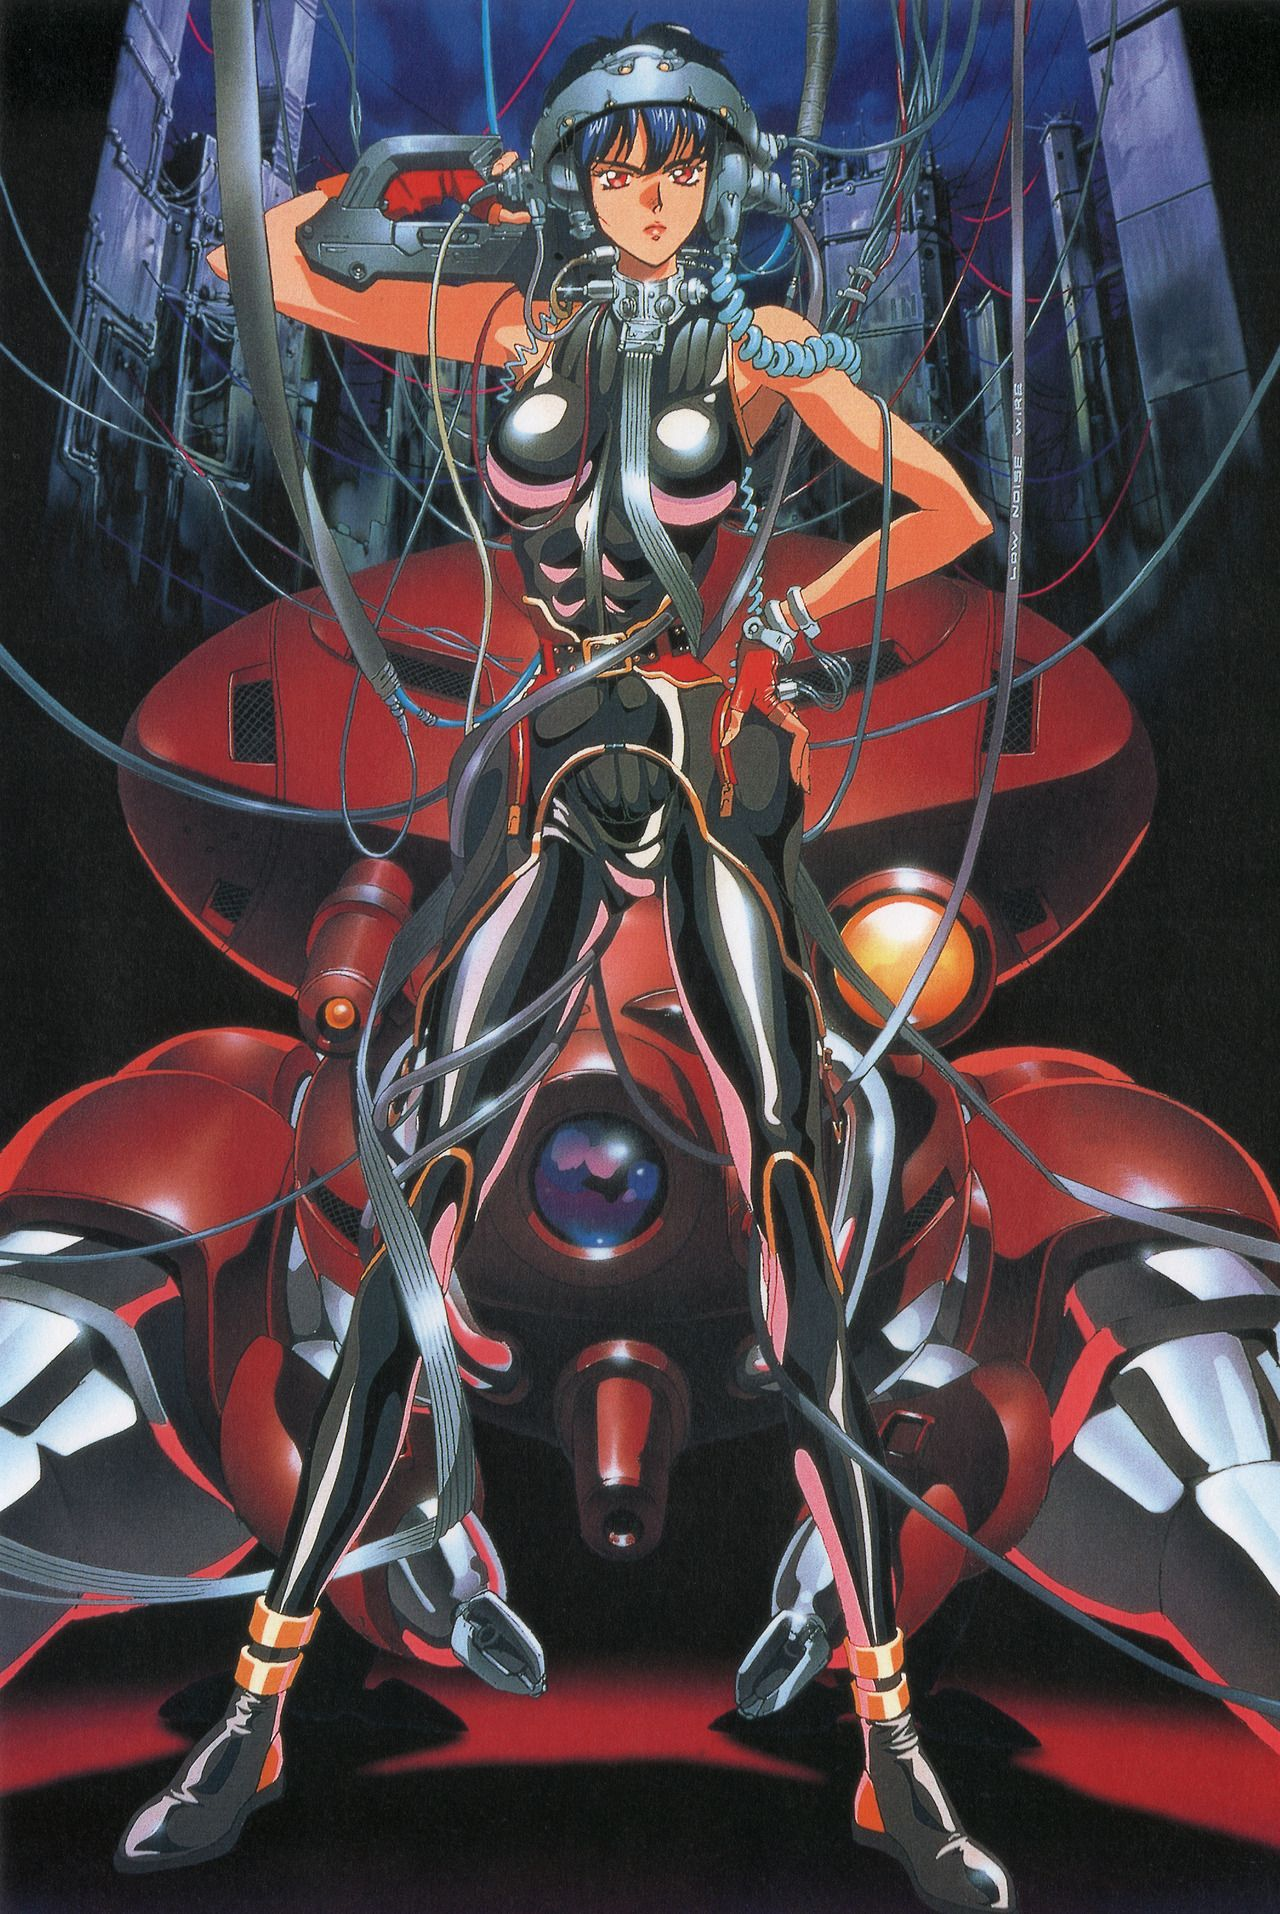 Durandalbebop Ghost In The Shell Artwork For The Playstation Game By Toshihiro Kawamoto Shell Artwork Ghost In The Shell Anime